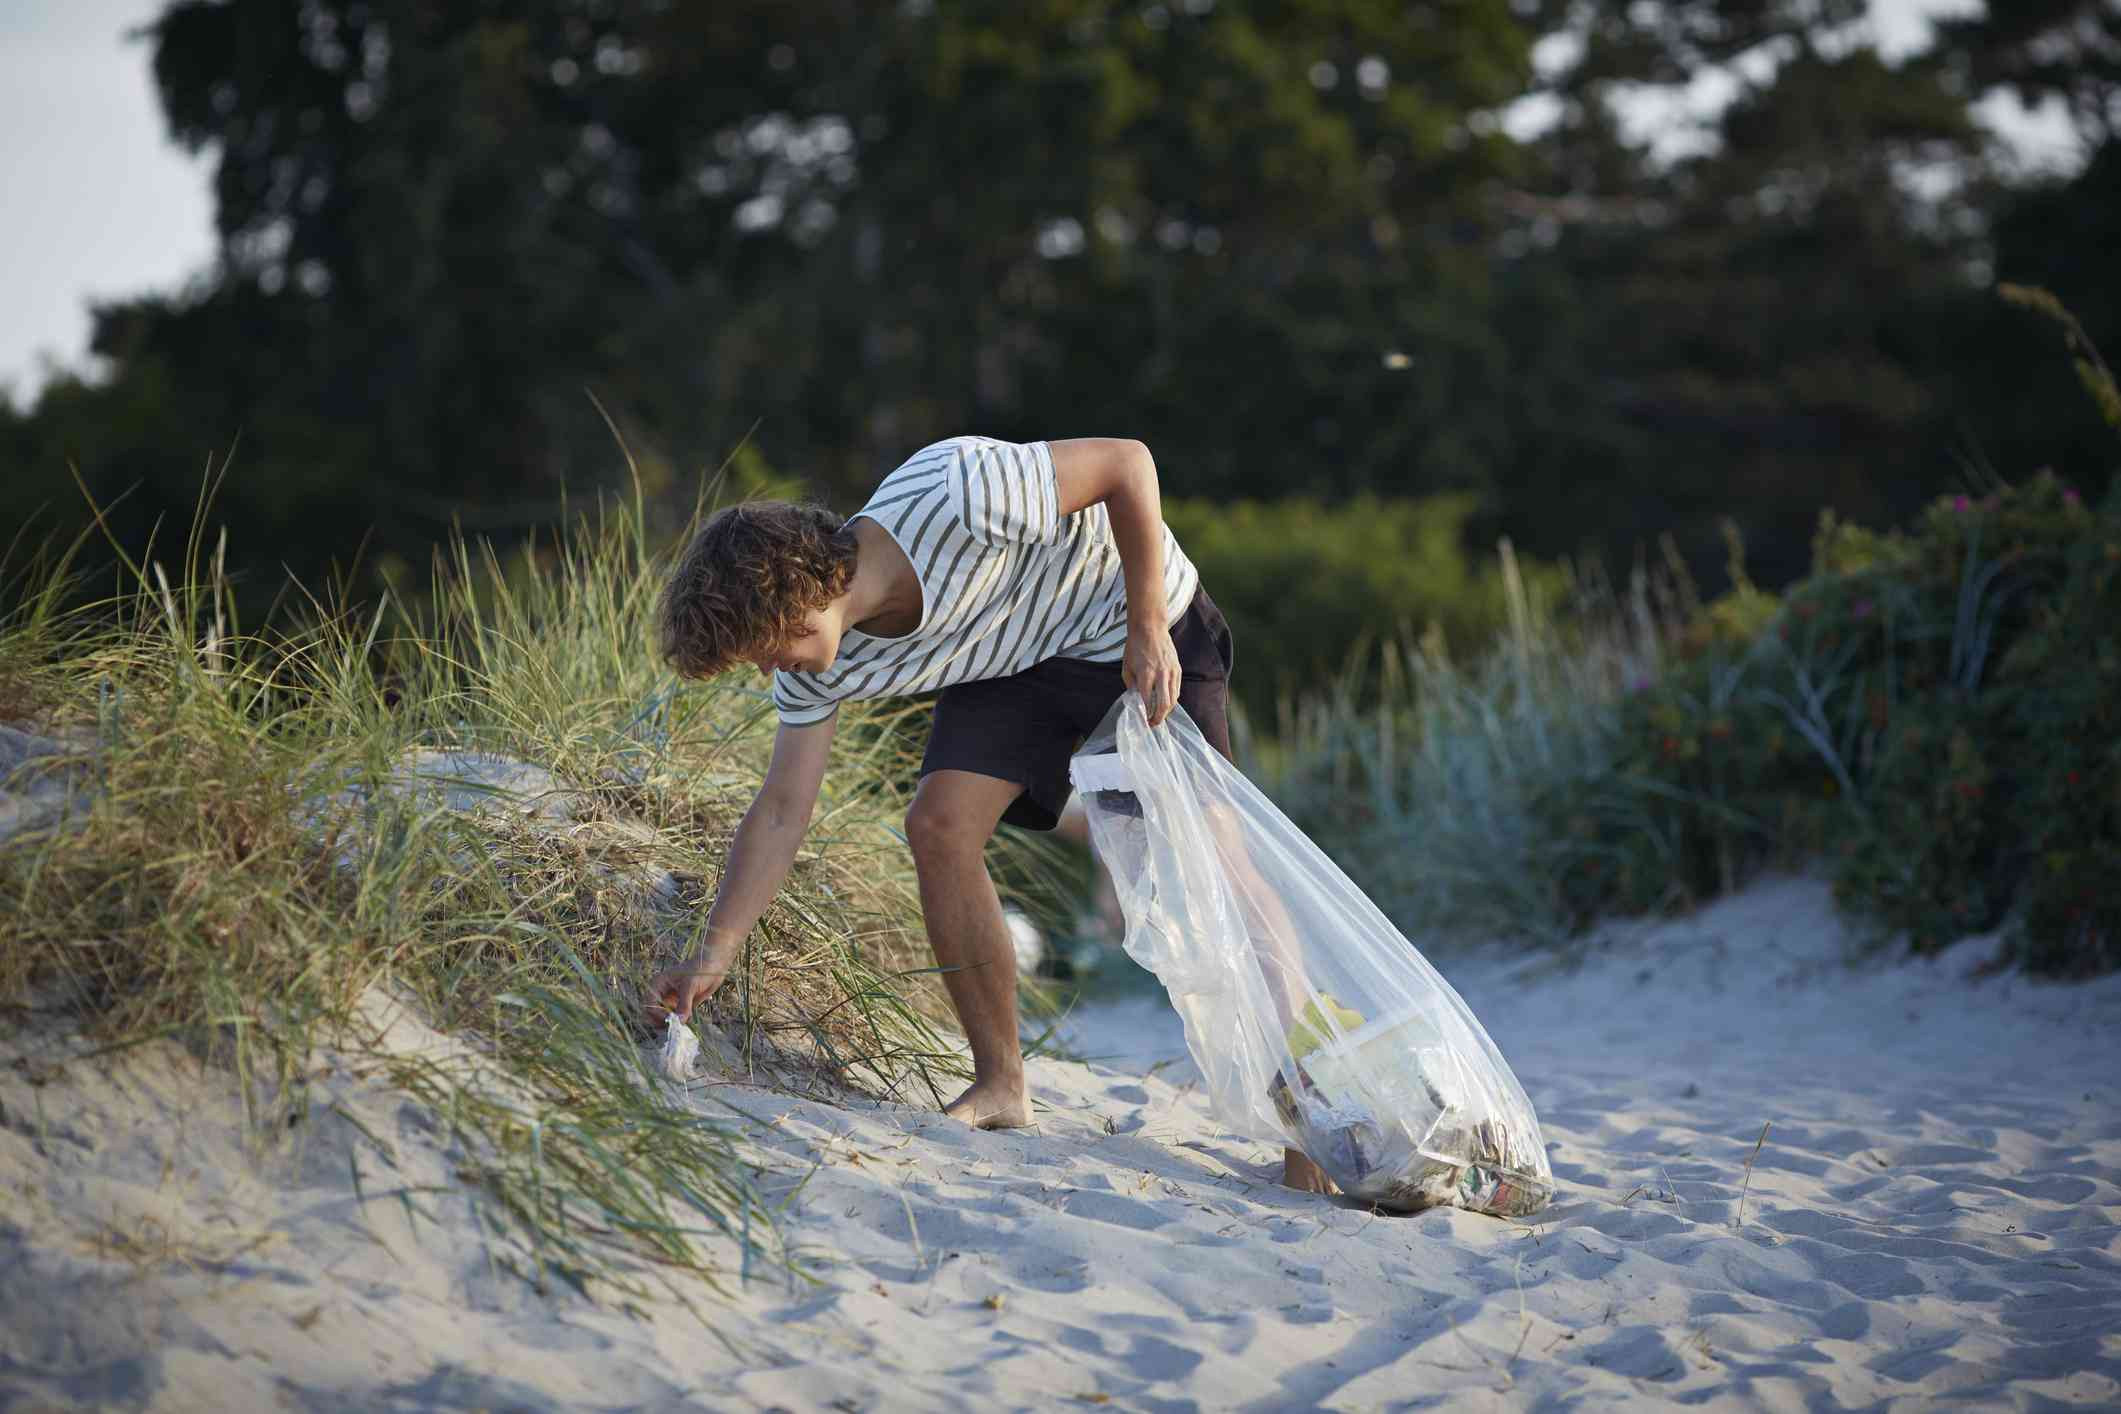 A teenager picking up garbage on the beach.